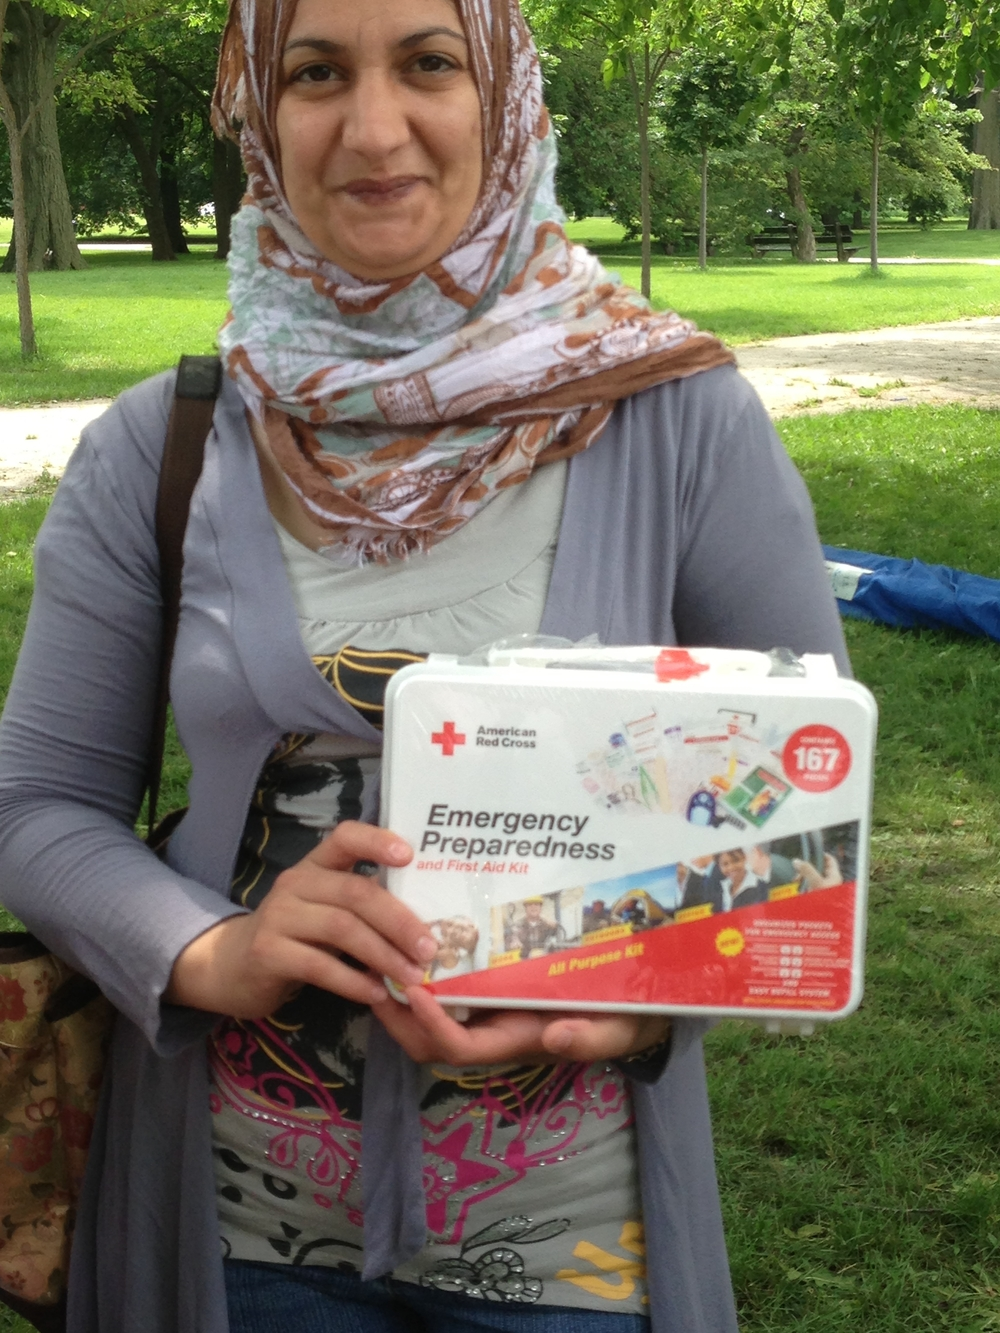 Attendee Gihan Ismail holds an Emergency First Aid Kit given by the Red Cross